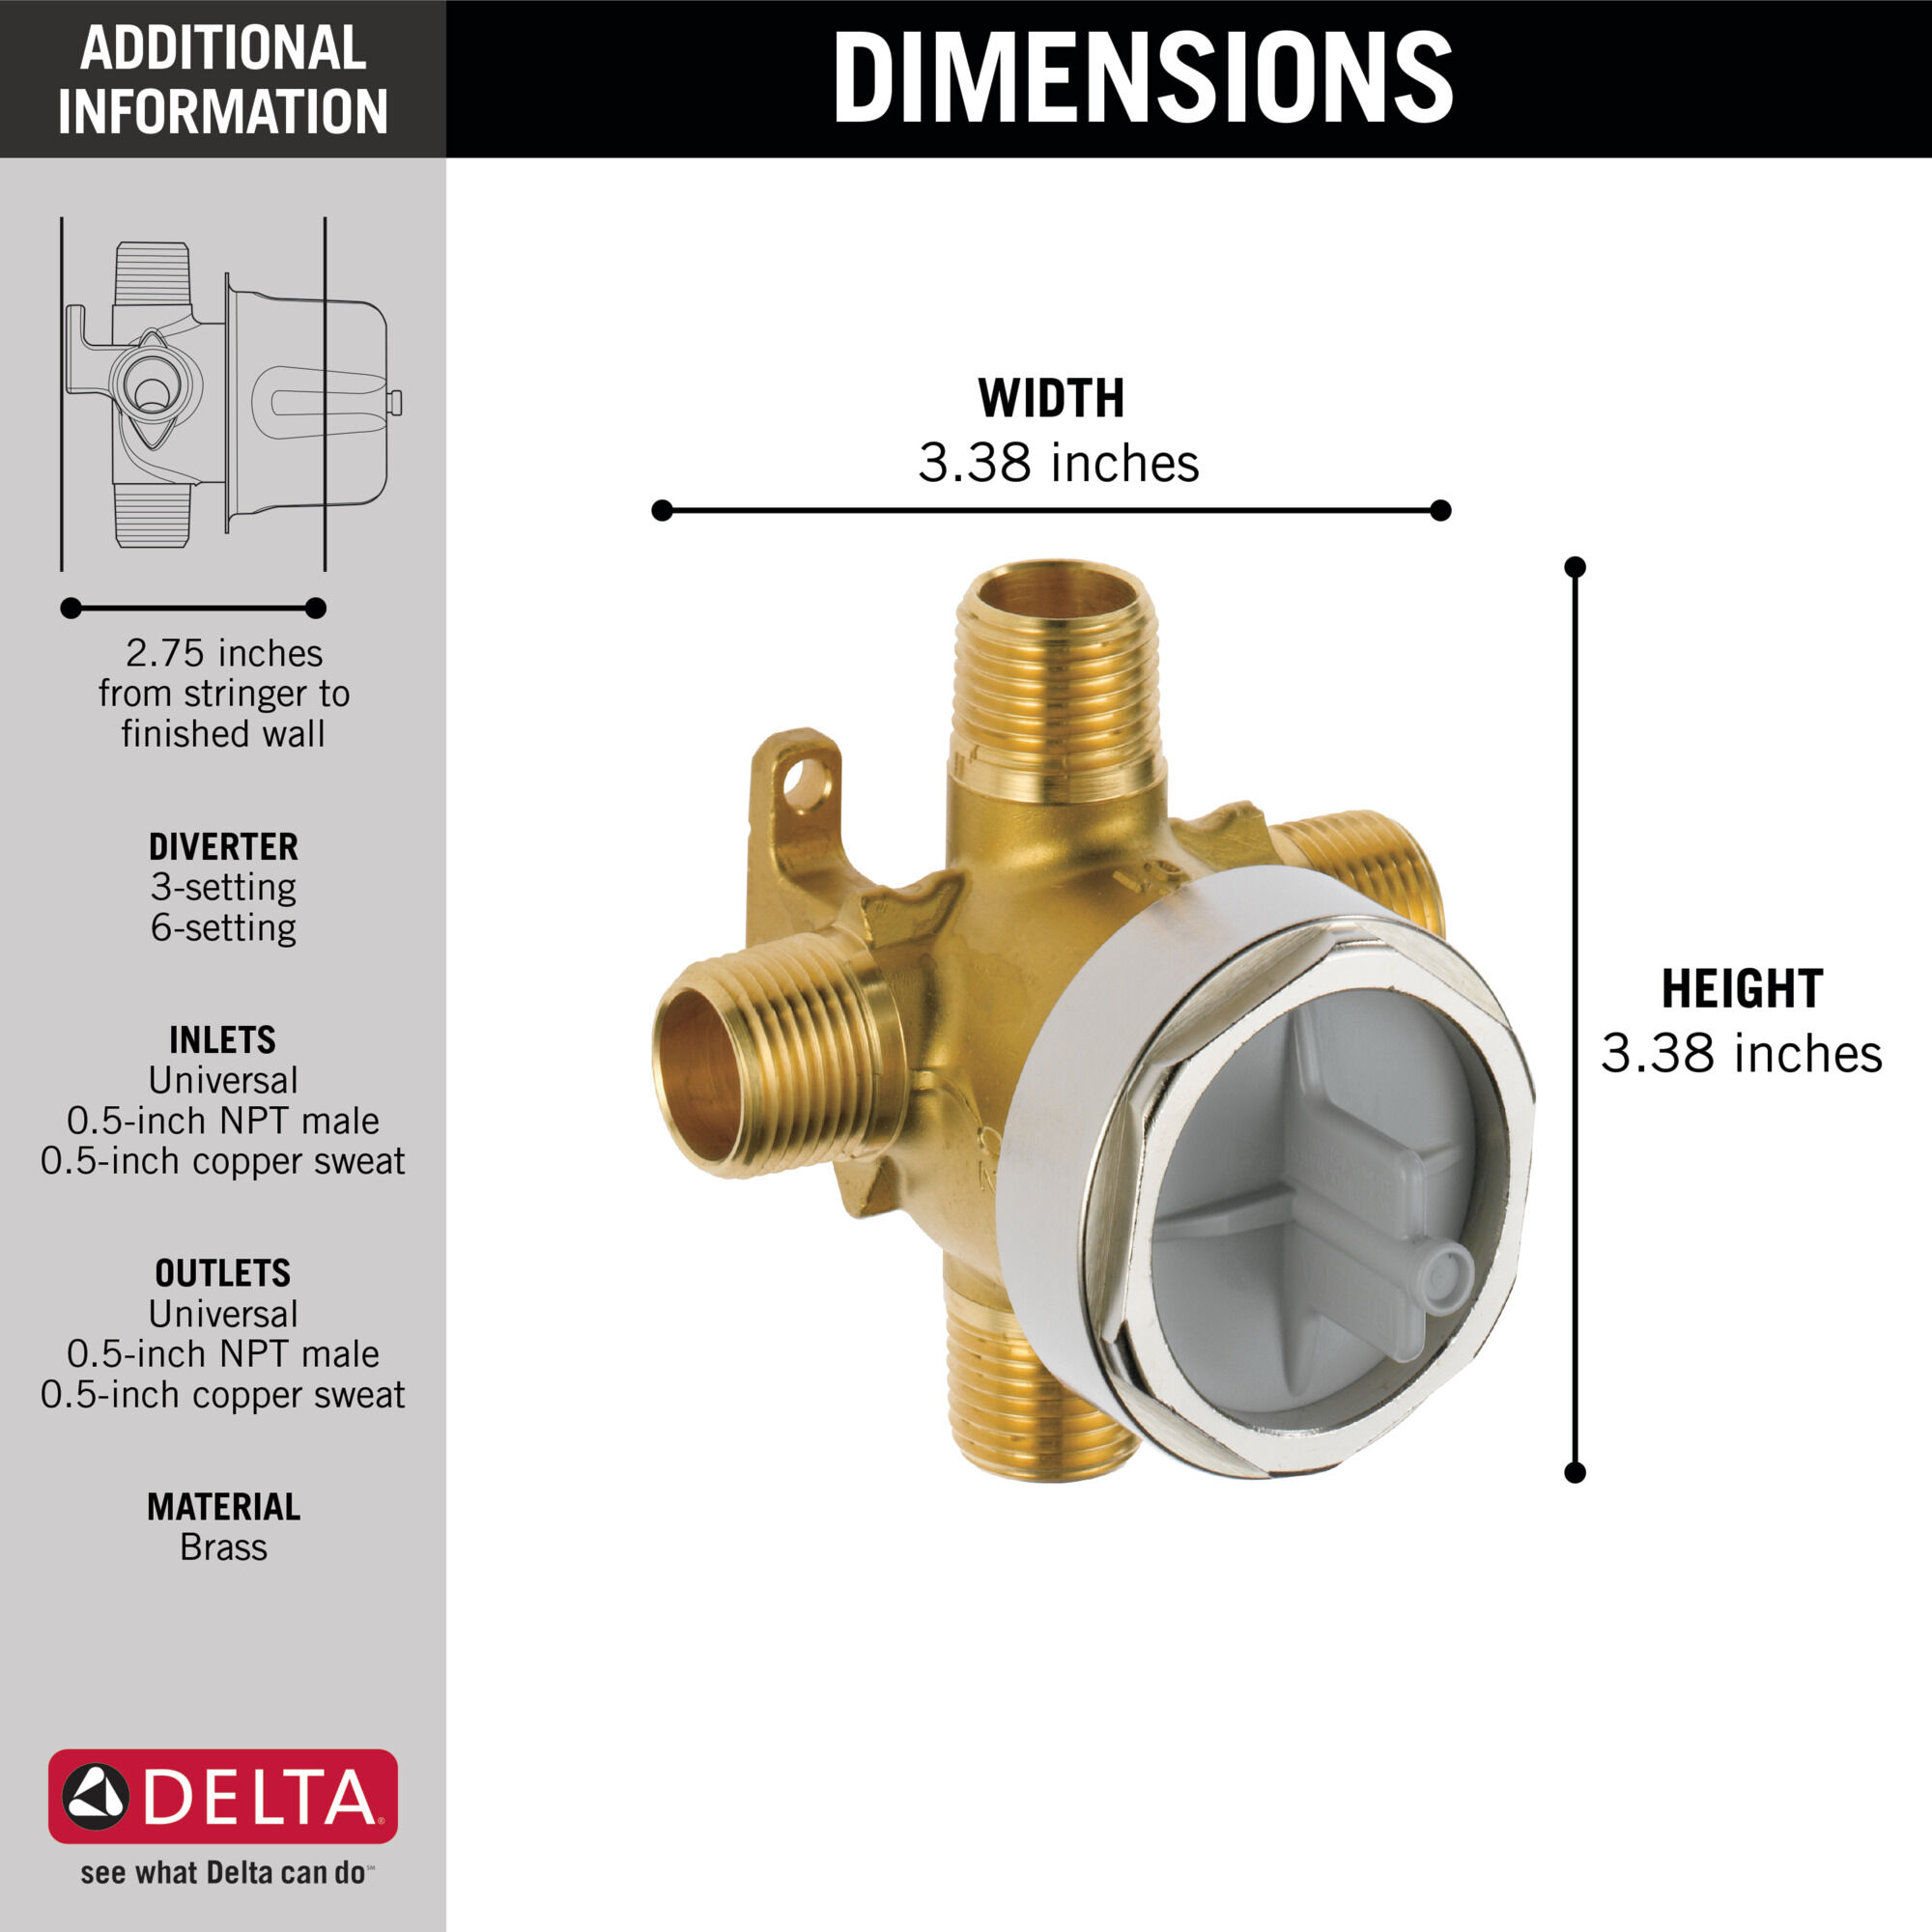 3 and 6 setting diverter rough